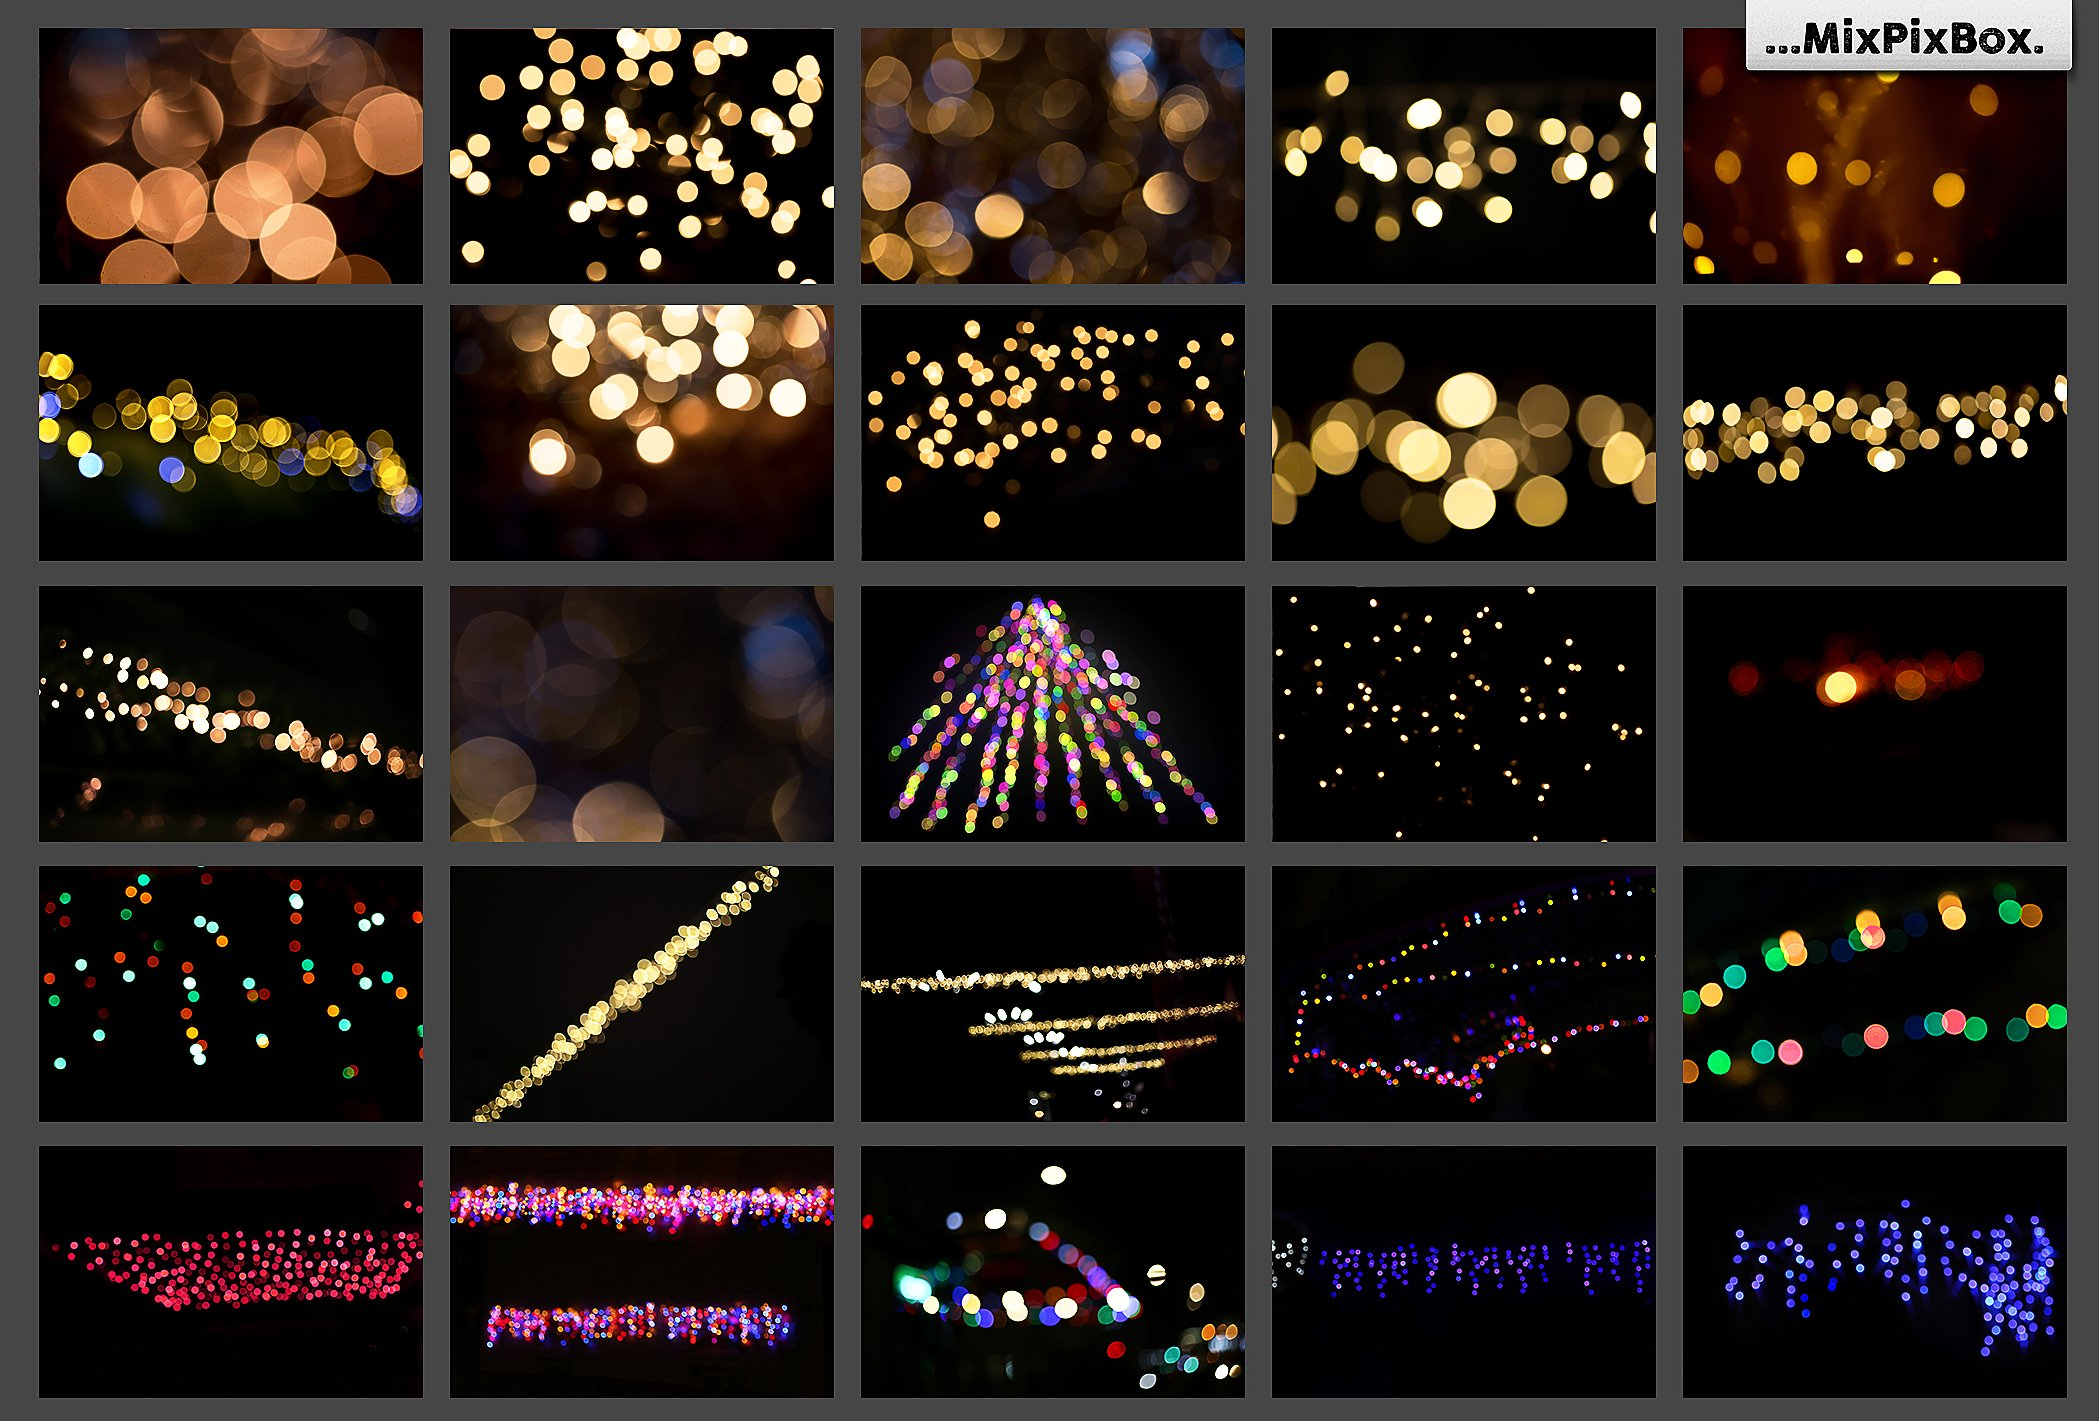 100 Bokeh Photo Overlays - $9 - 5 2